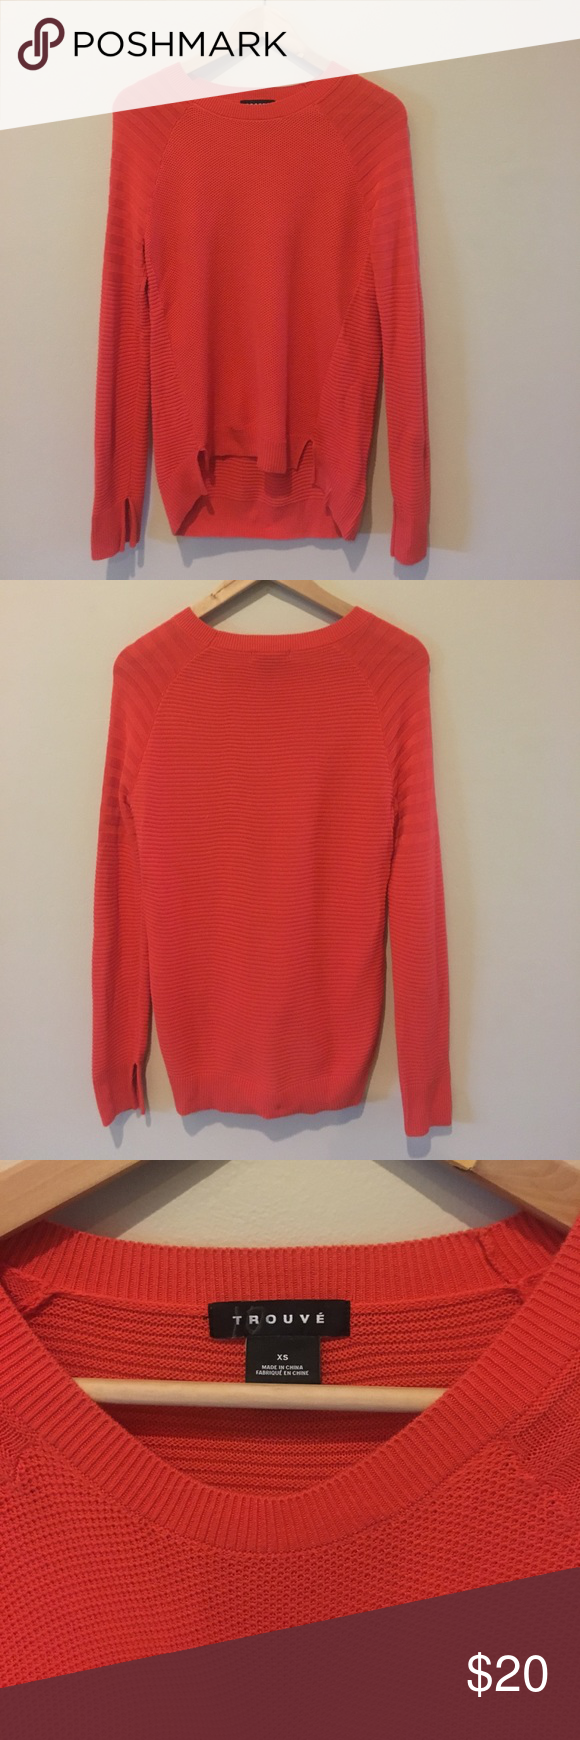 Trouvé Orange Sweater | Scoop neck, Customer support and Delivery